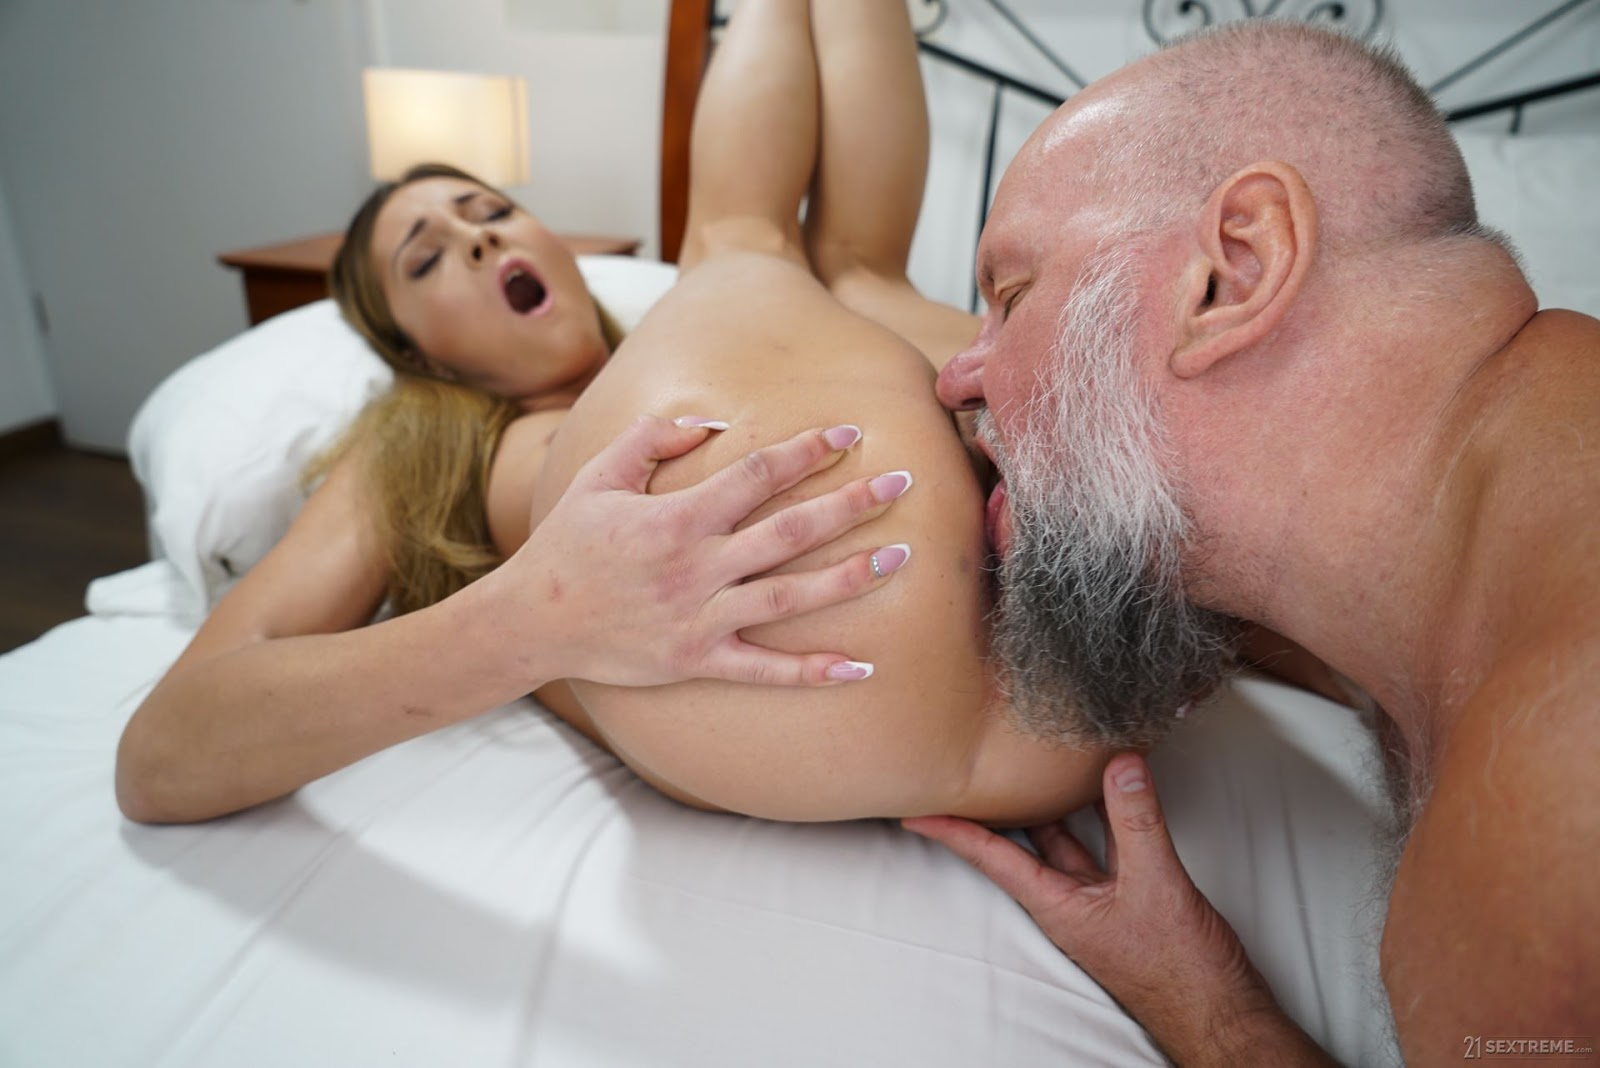 SweetRevenge,21 SEXTREME, 4K, Anal, Threesome, Uncensored, Westen, Westen Porn,Albert ,Akira May